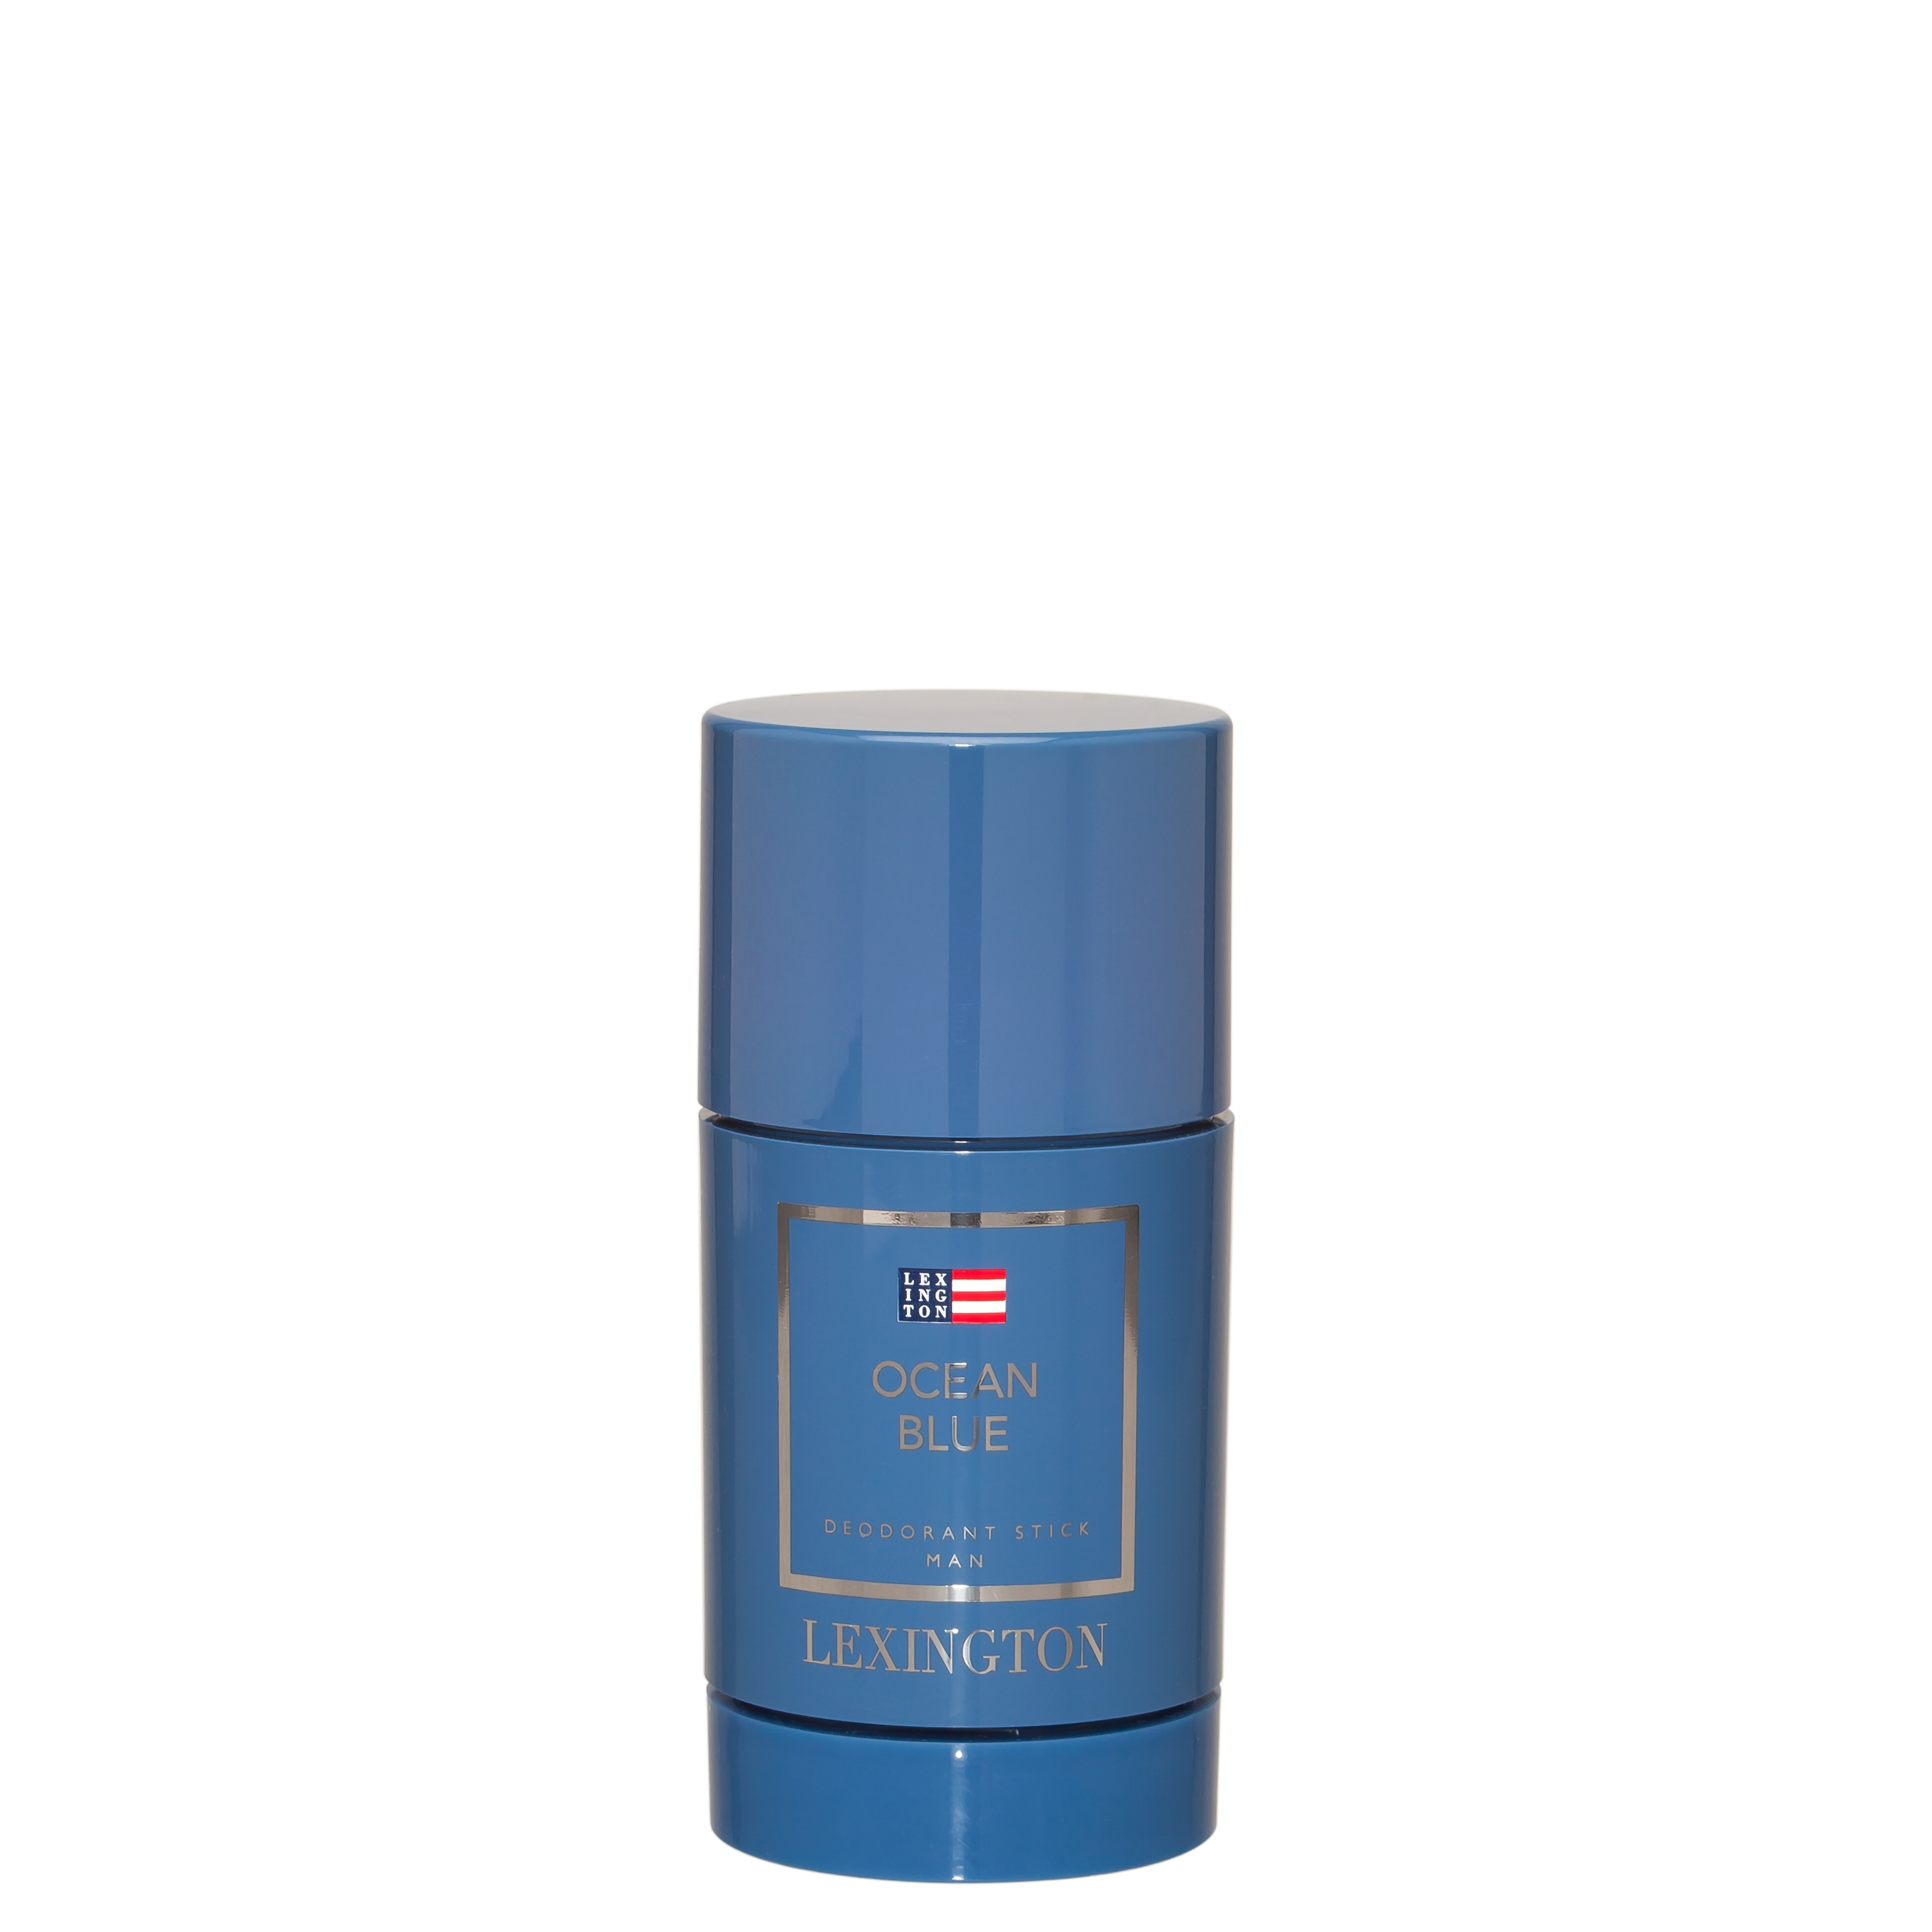 Ocean Blue Deodorant Stick 75 ml